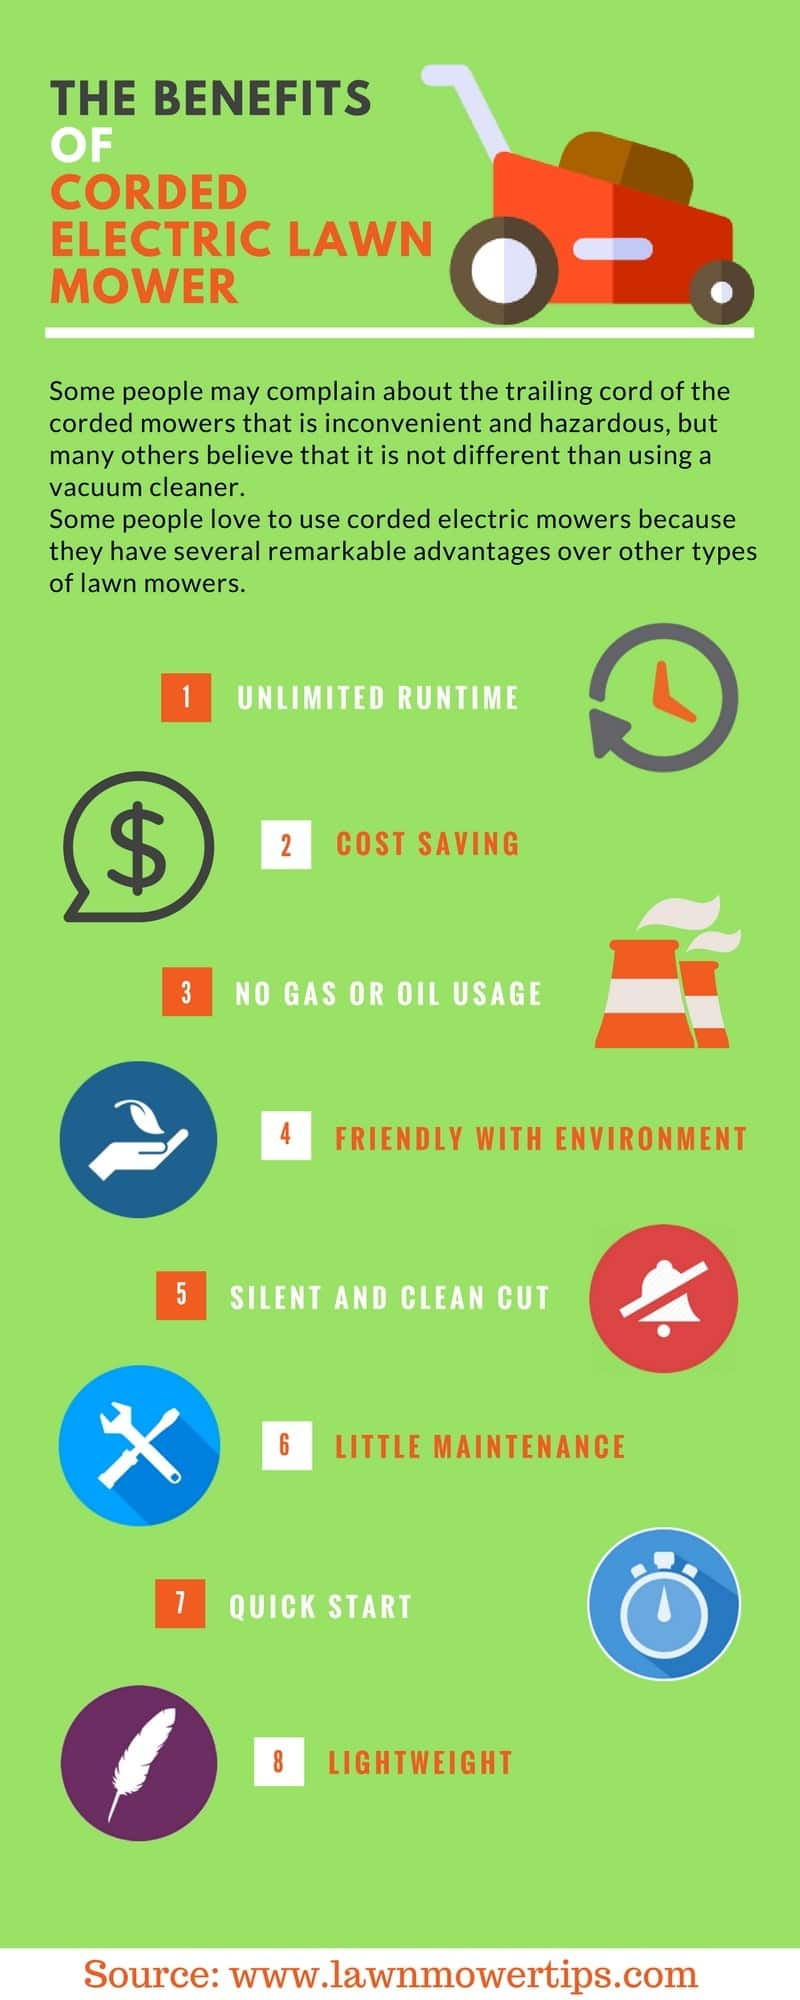 The benefits of a corded electric lawn mower